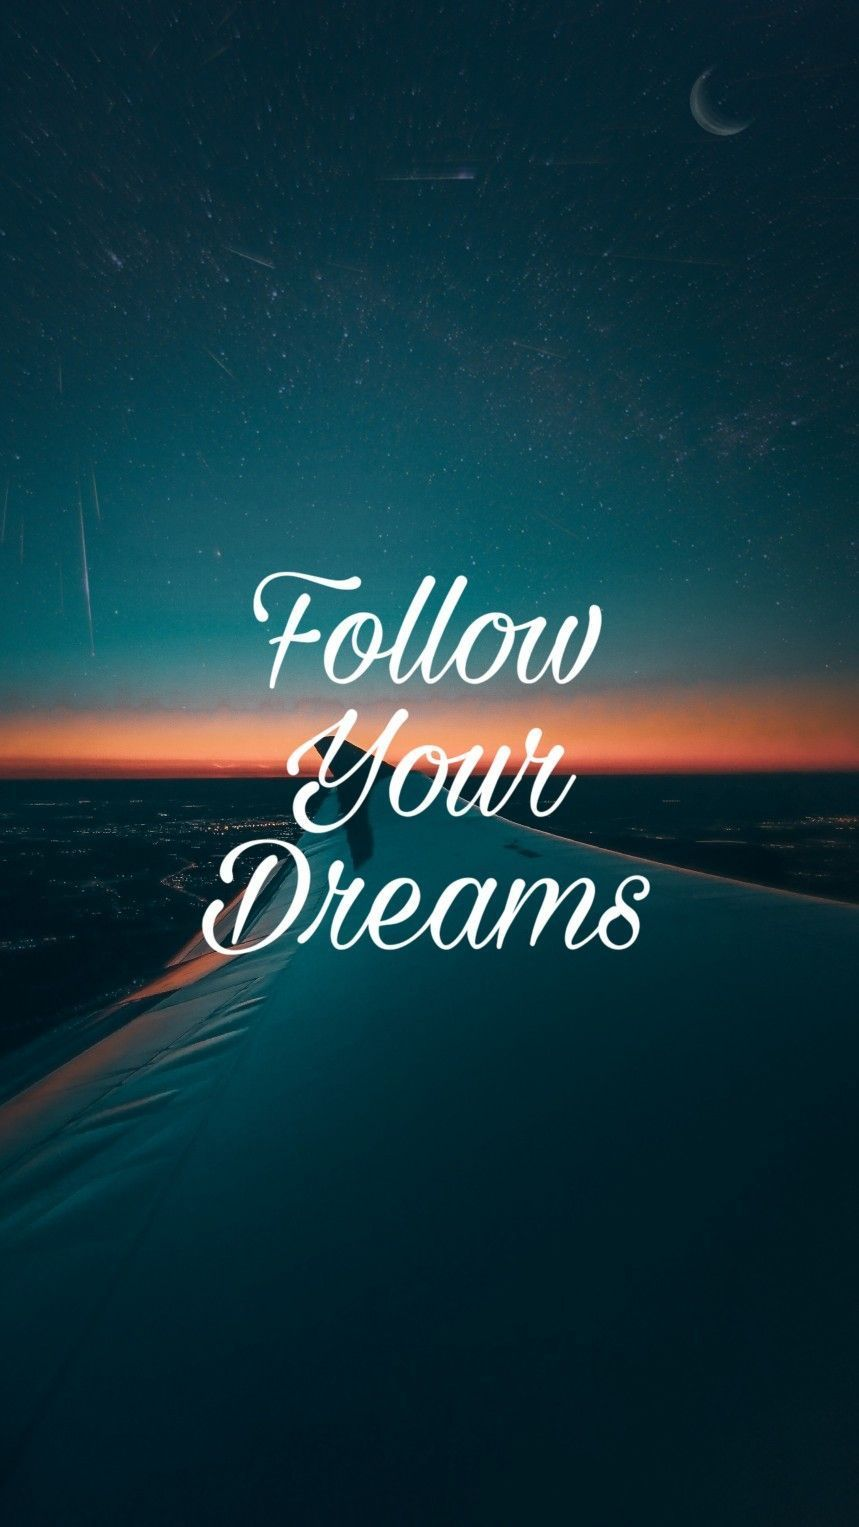 Dreams Quotes Wallpapers - Top Free Dreams Quotes Backgrounds